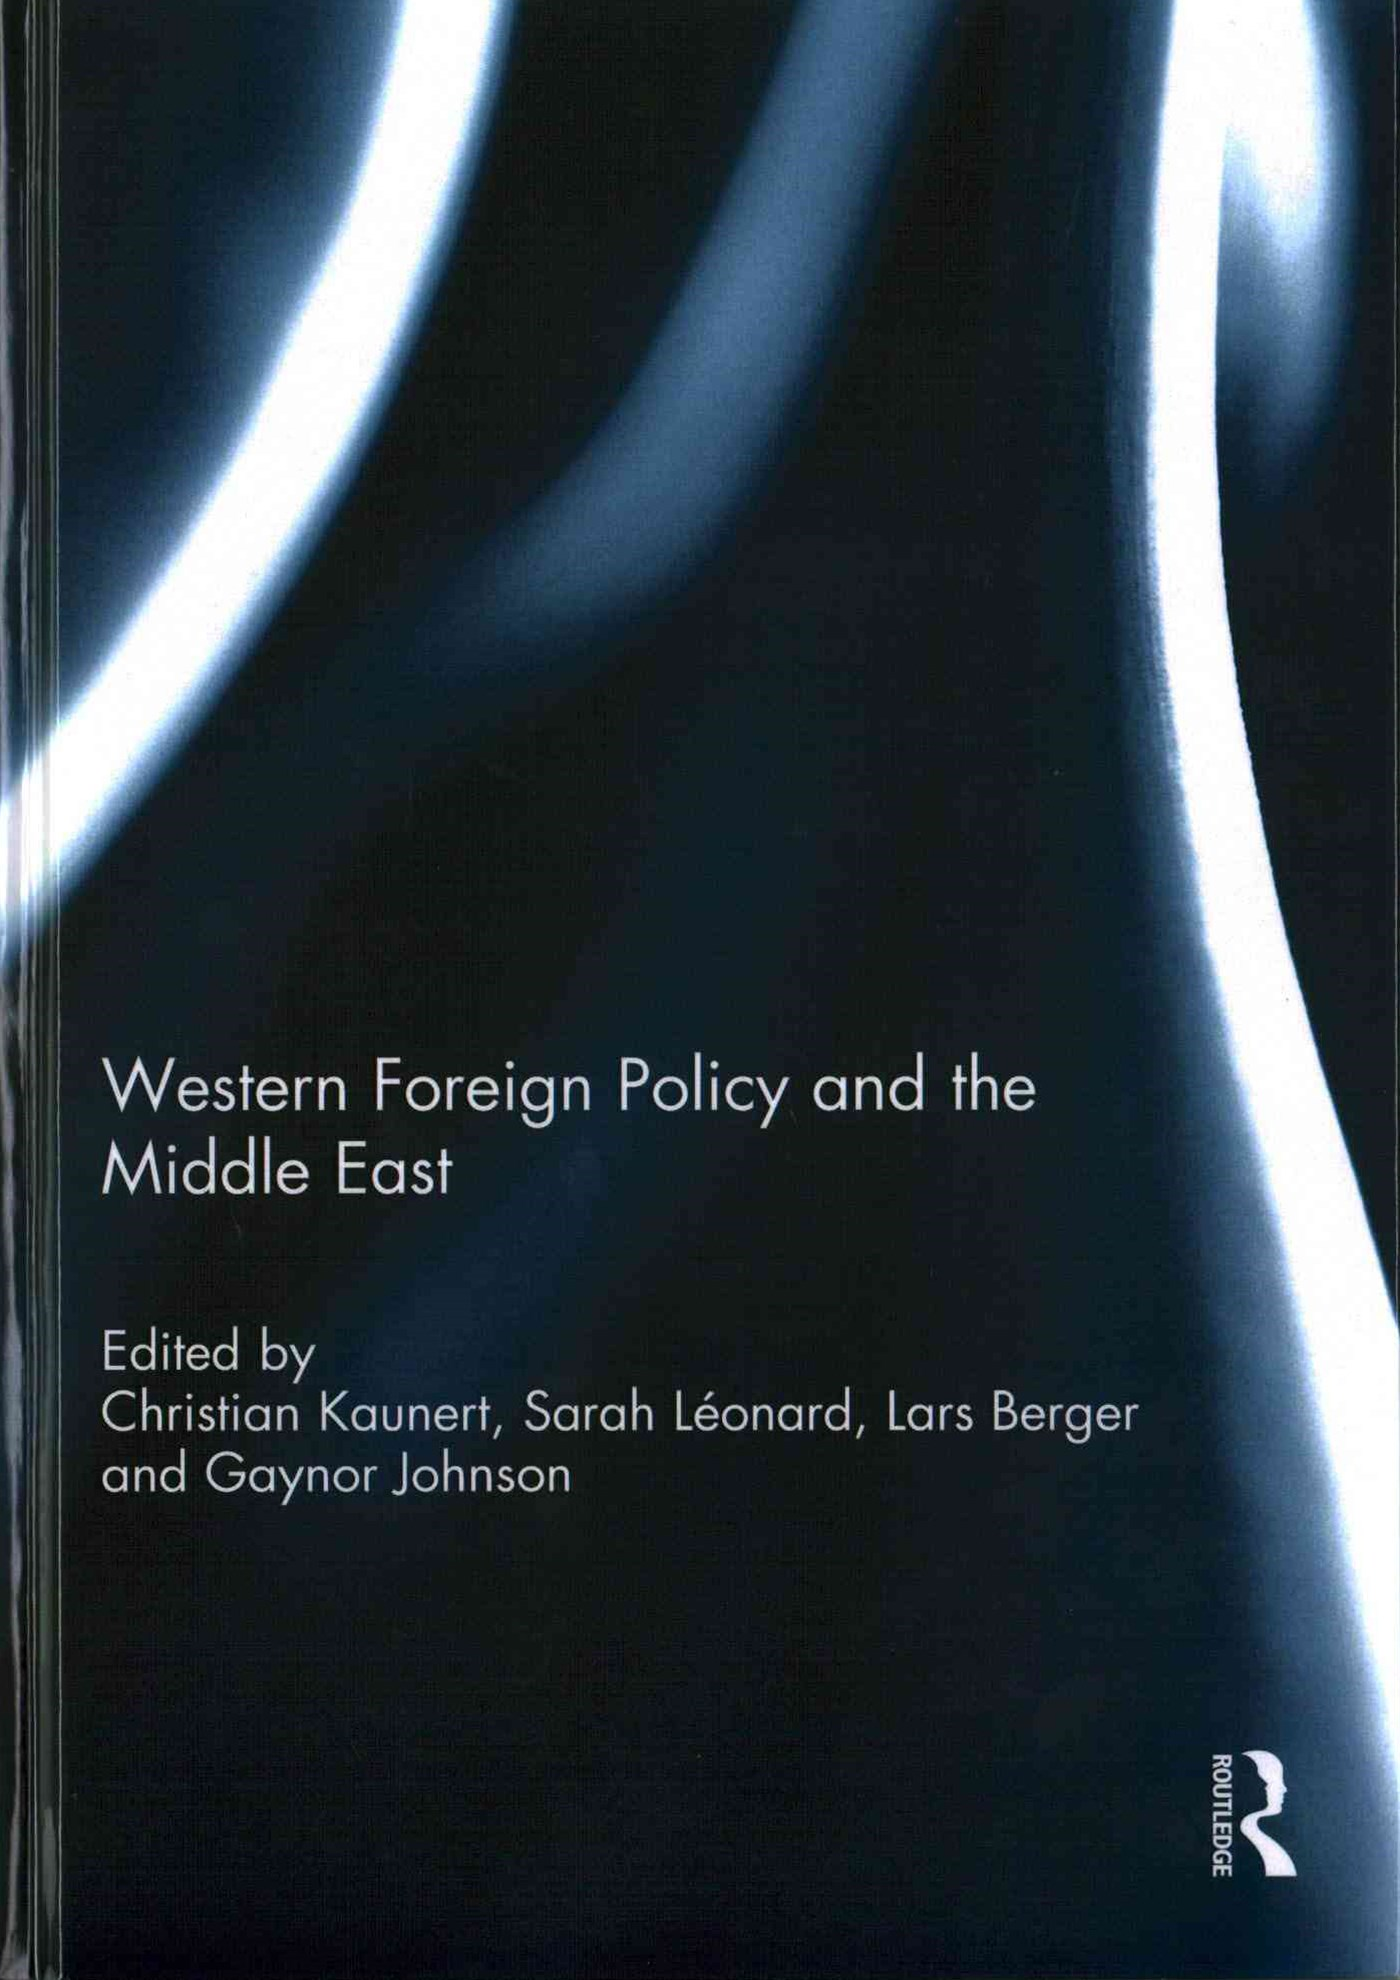 Western Foreign Policy and the Middle East